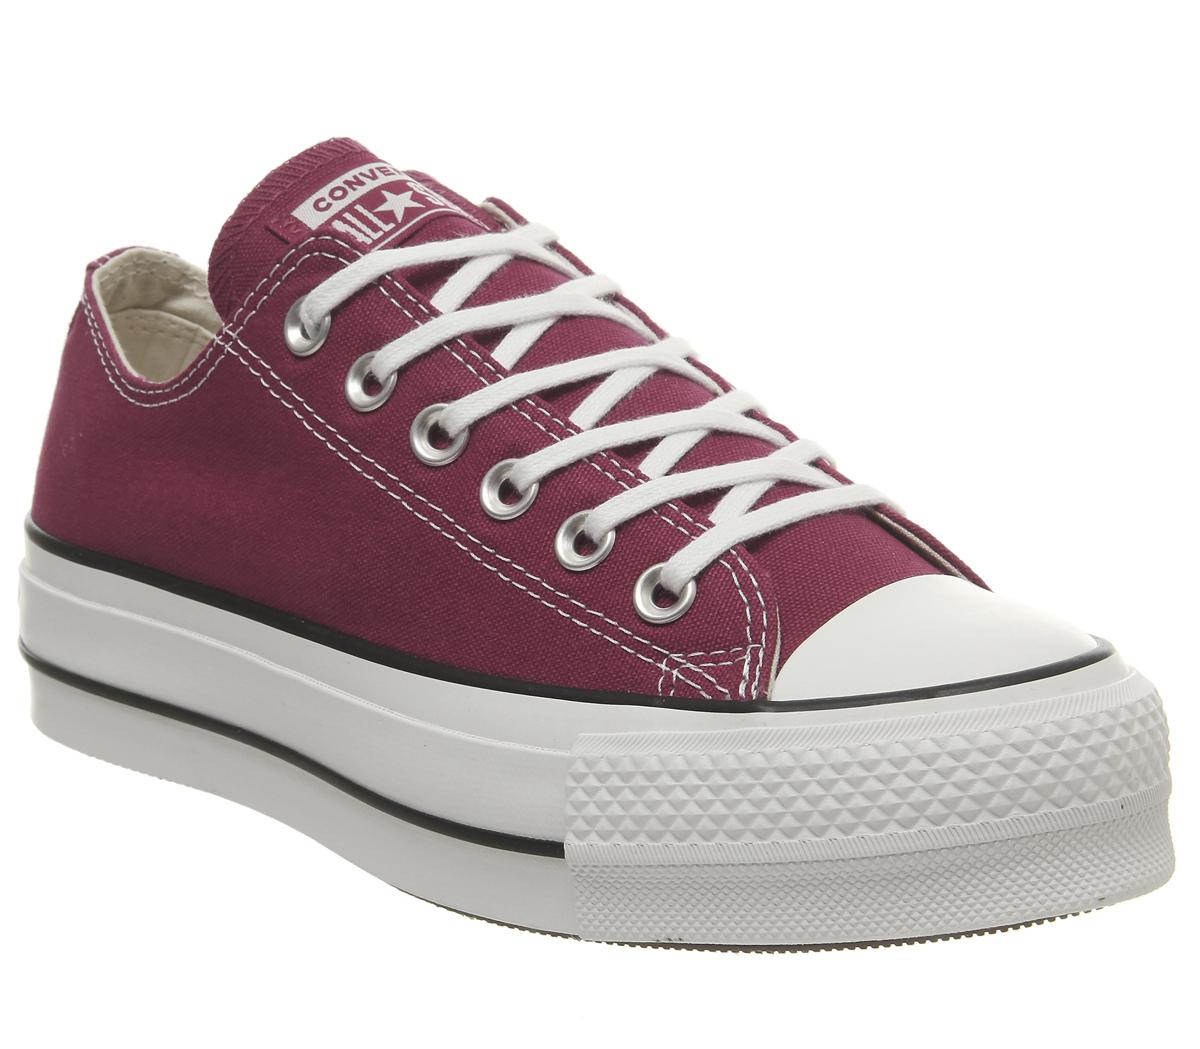 Converse Burgundy All Star Low Platform Trainers by Office